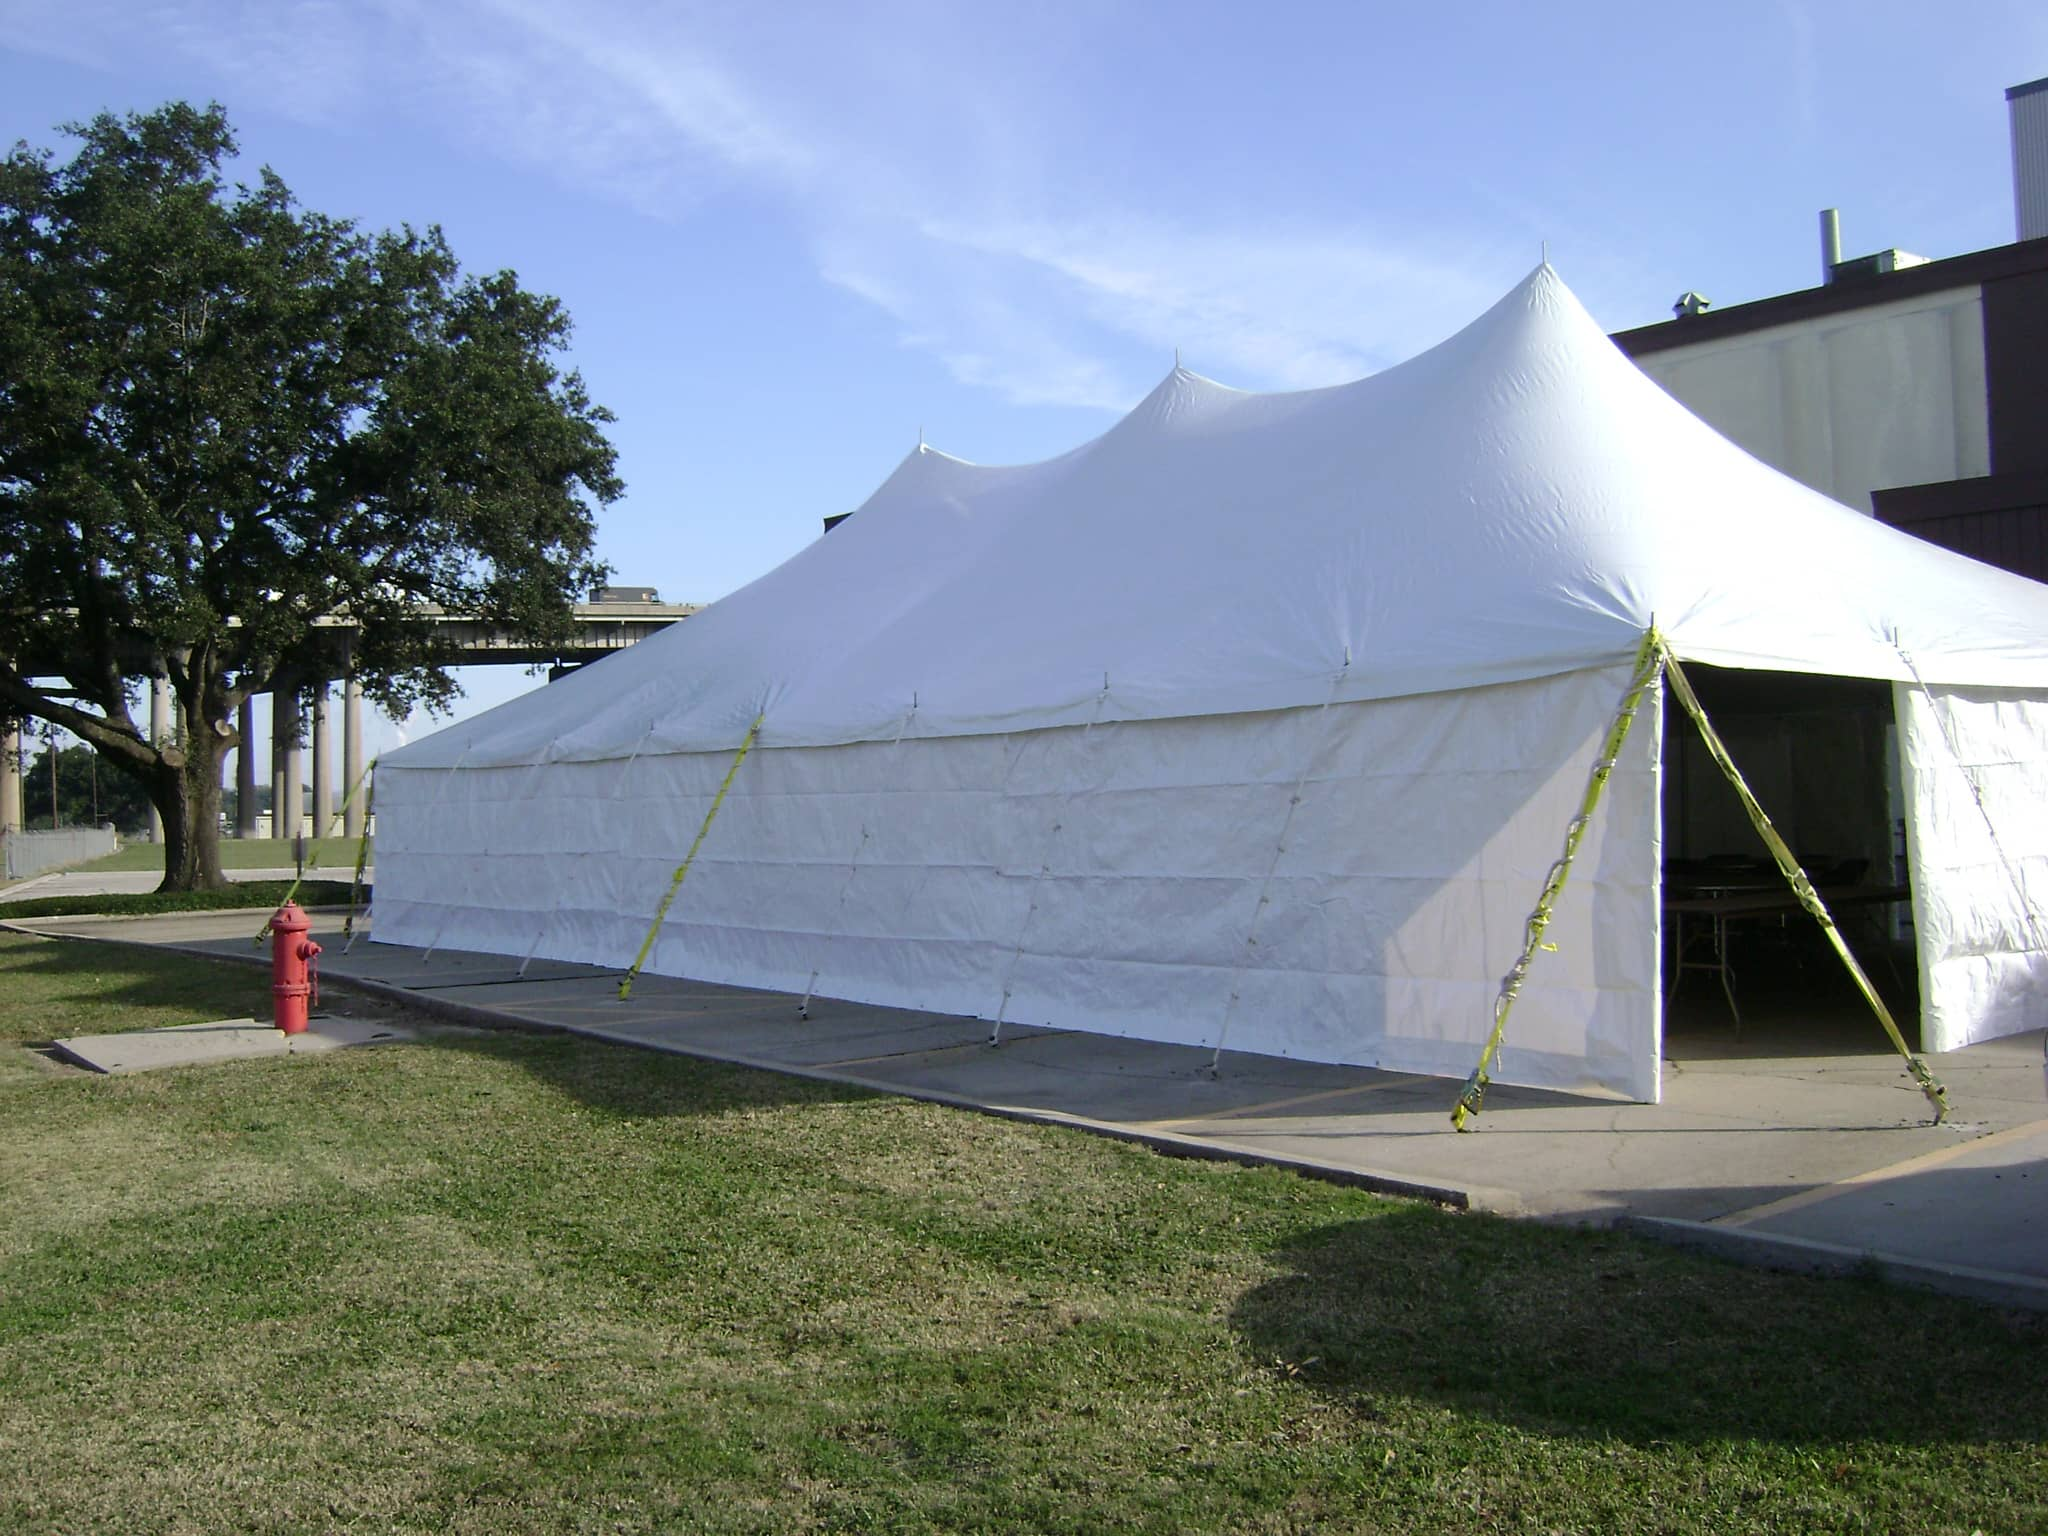 Large Industrial Tents - 40' x 40' Industrial Tent Sales | Service